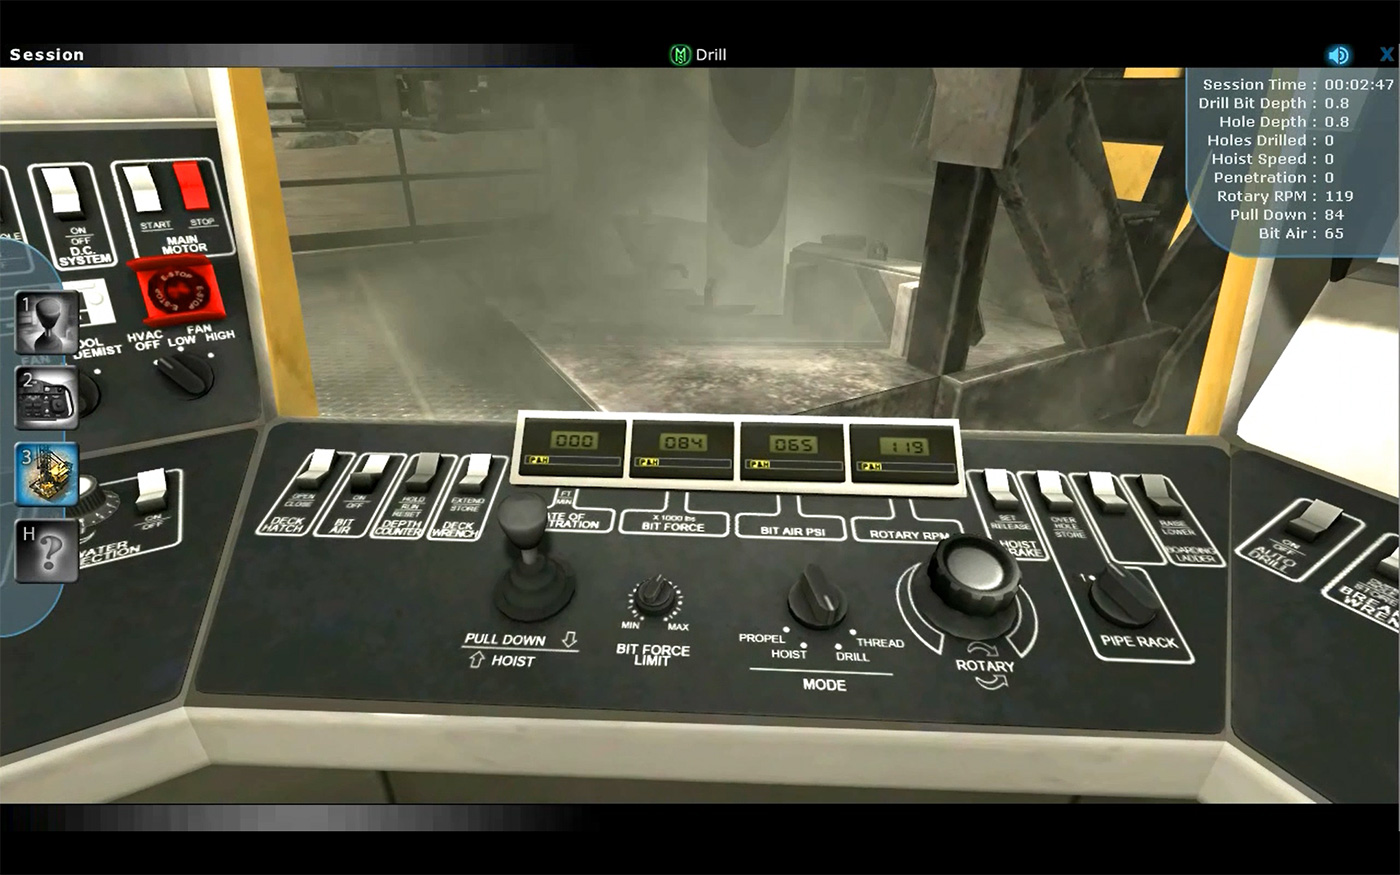 Komatsu PH Mining Blasthole Drill Operator Training Simulator by ForgeFX Simulations